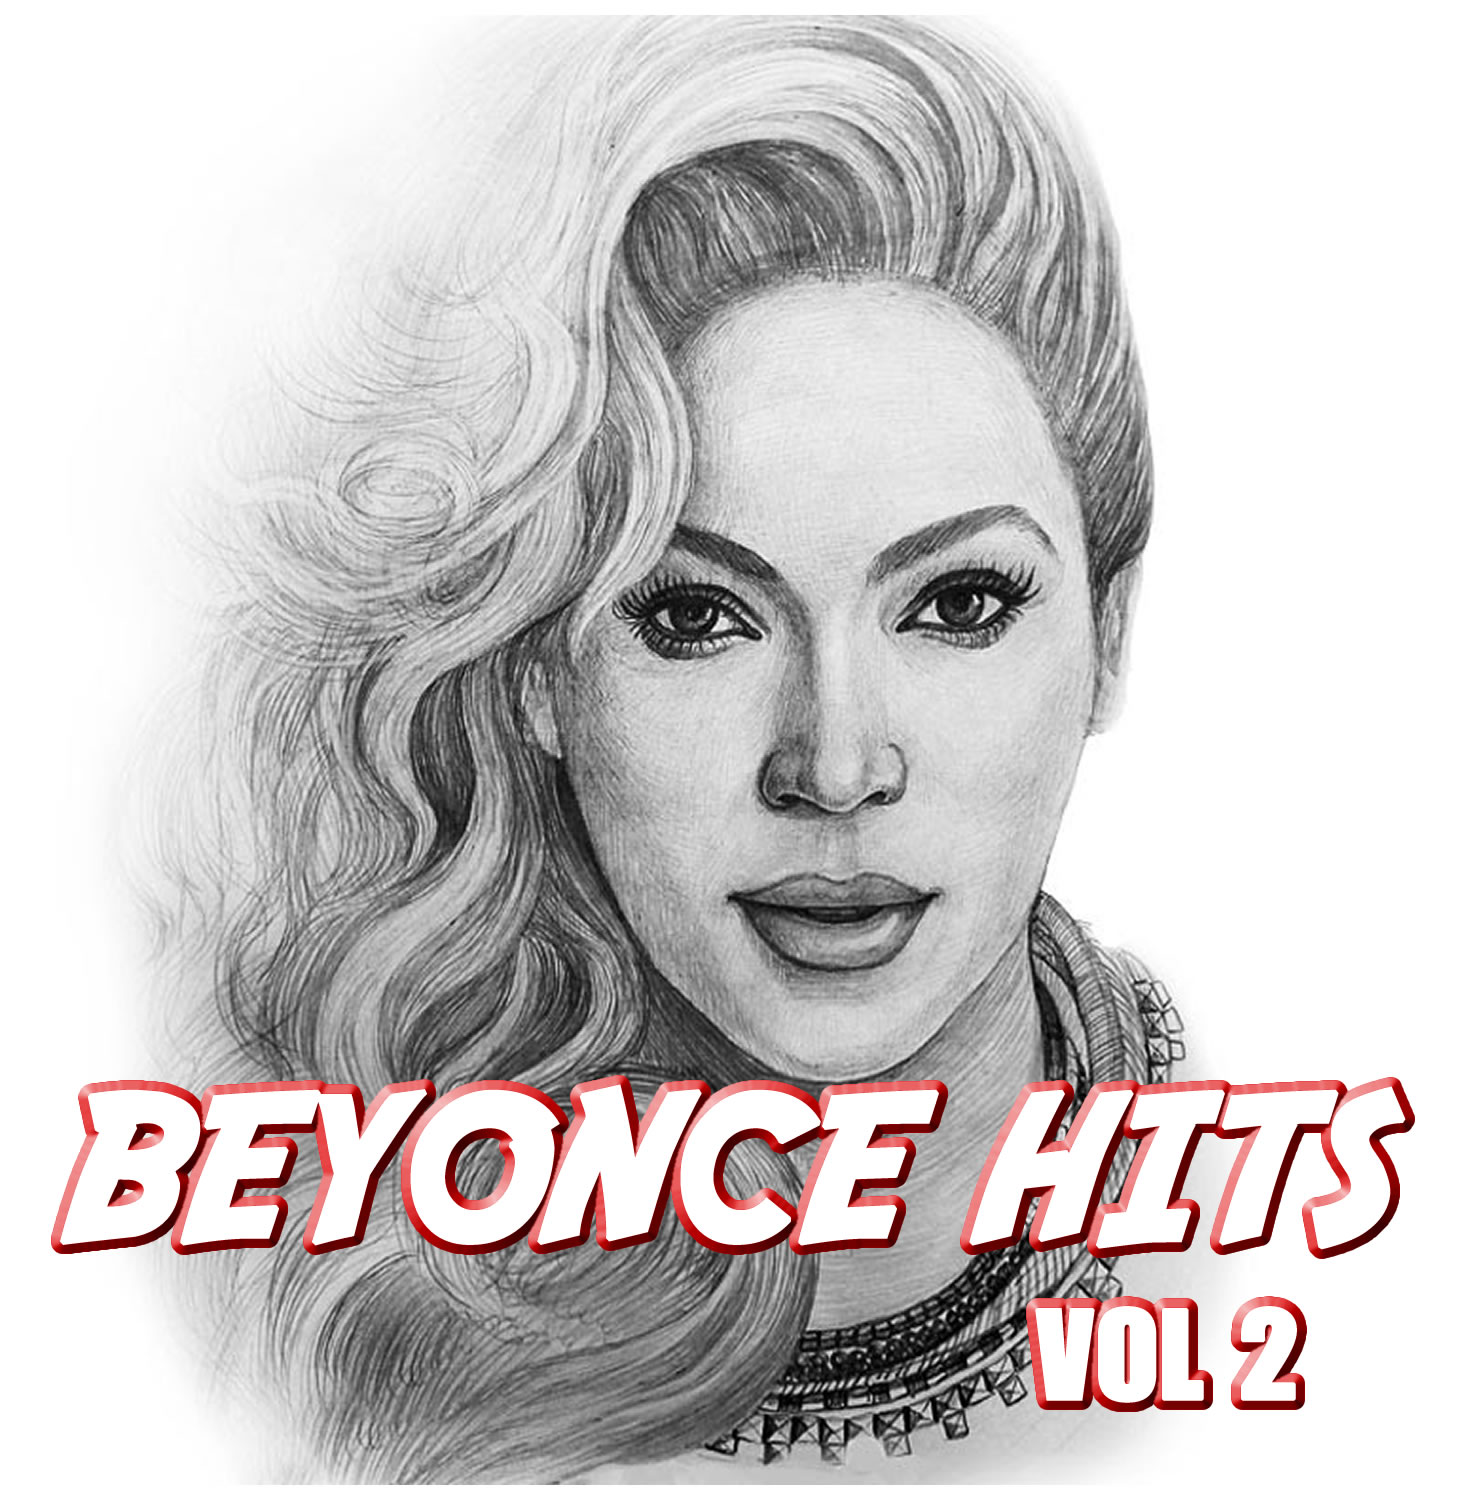 Vocal-Star Beyonce2 Hits